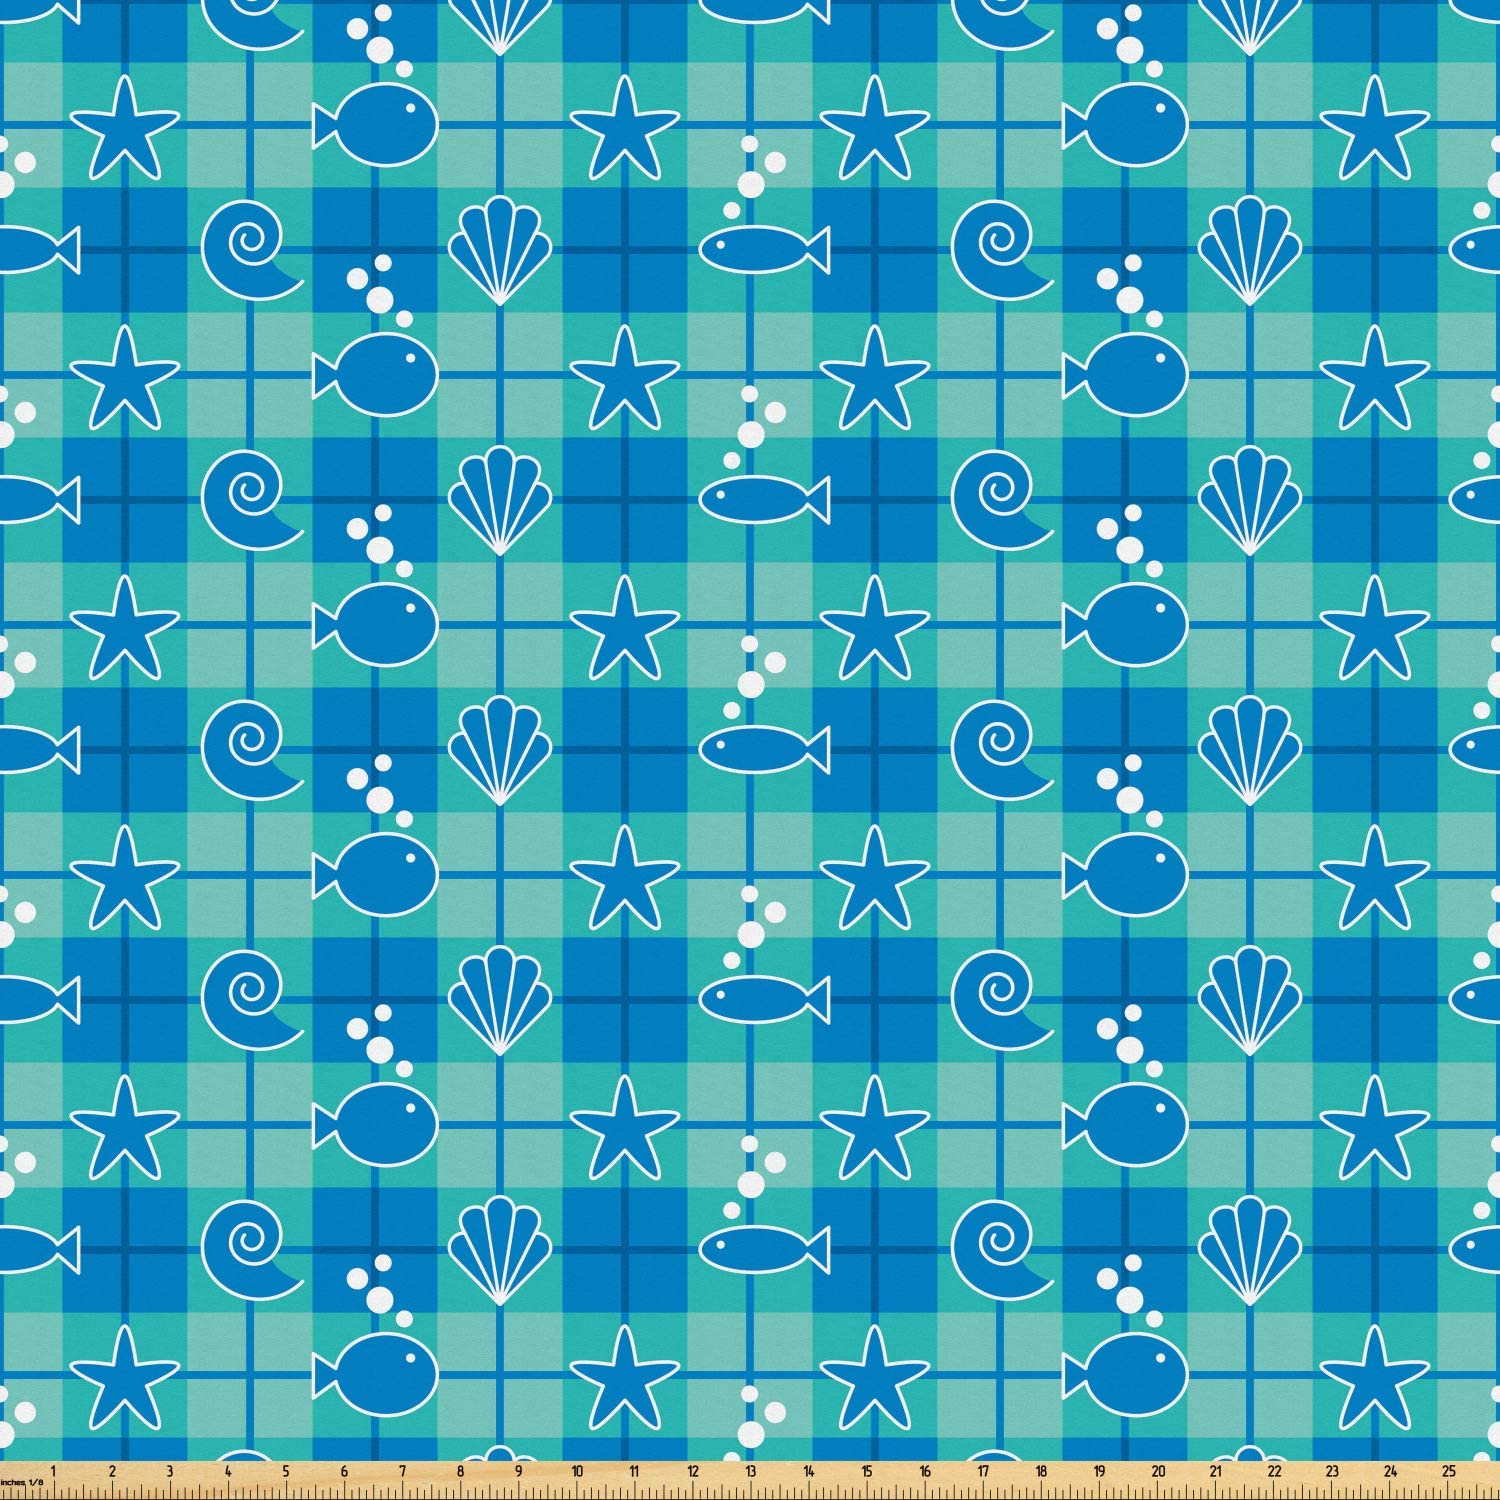 Ambesonne Sea Shells Fabric by The Yard, Plaid Pattern with Cartoon Marine Silhouettes Fish Starfishes Bubbles, Microfiber Fabric for Arts and Crafts Textiles & Decor, 3 Yards, Mint Green Blue White